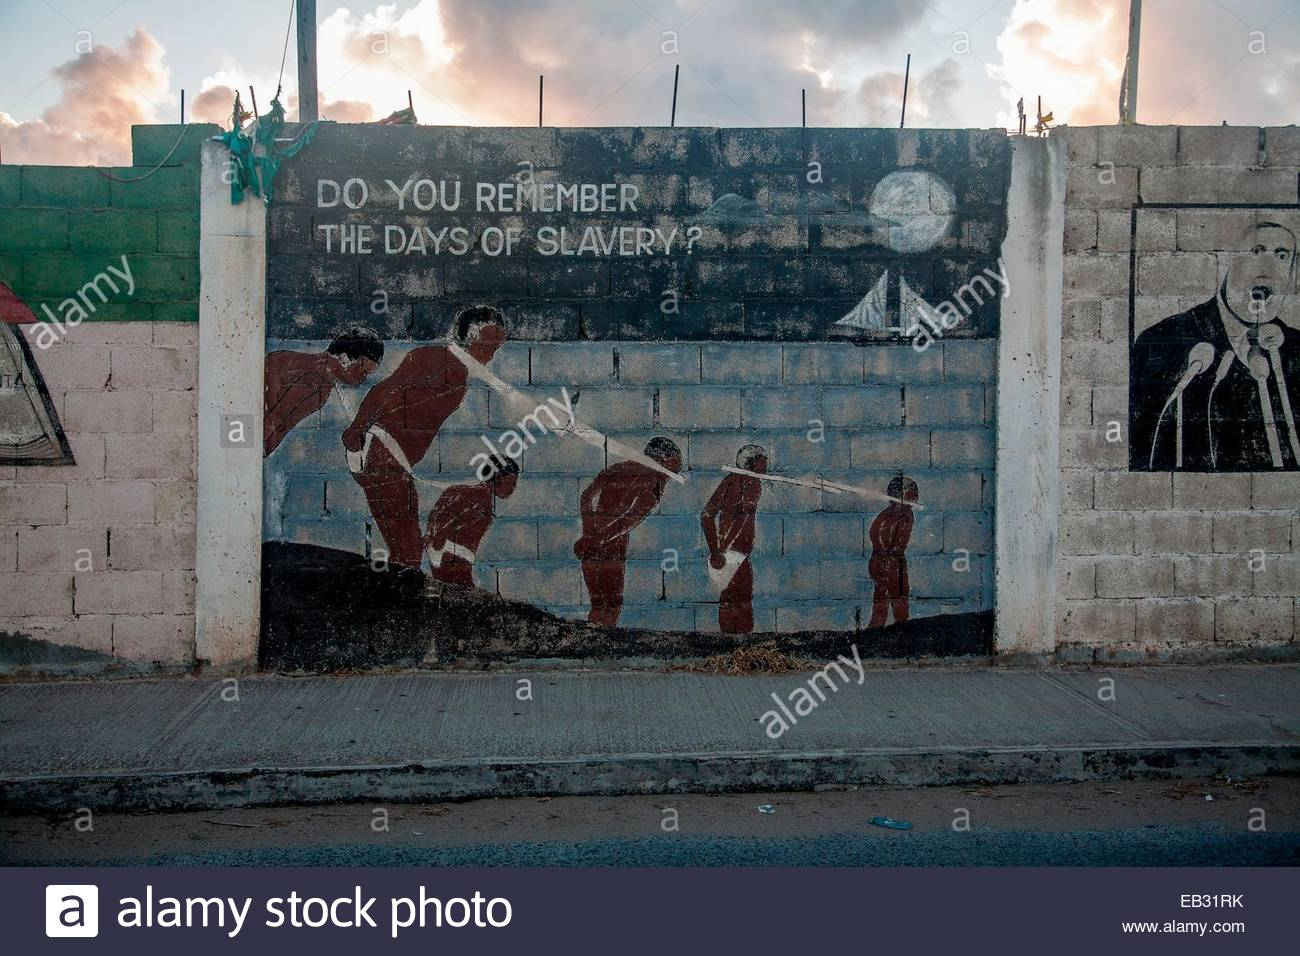 Do You Remember The Days of Slavery: a mural on Virgin Gorda Island. - Stock Image